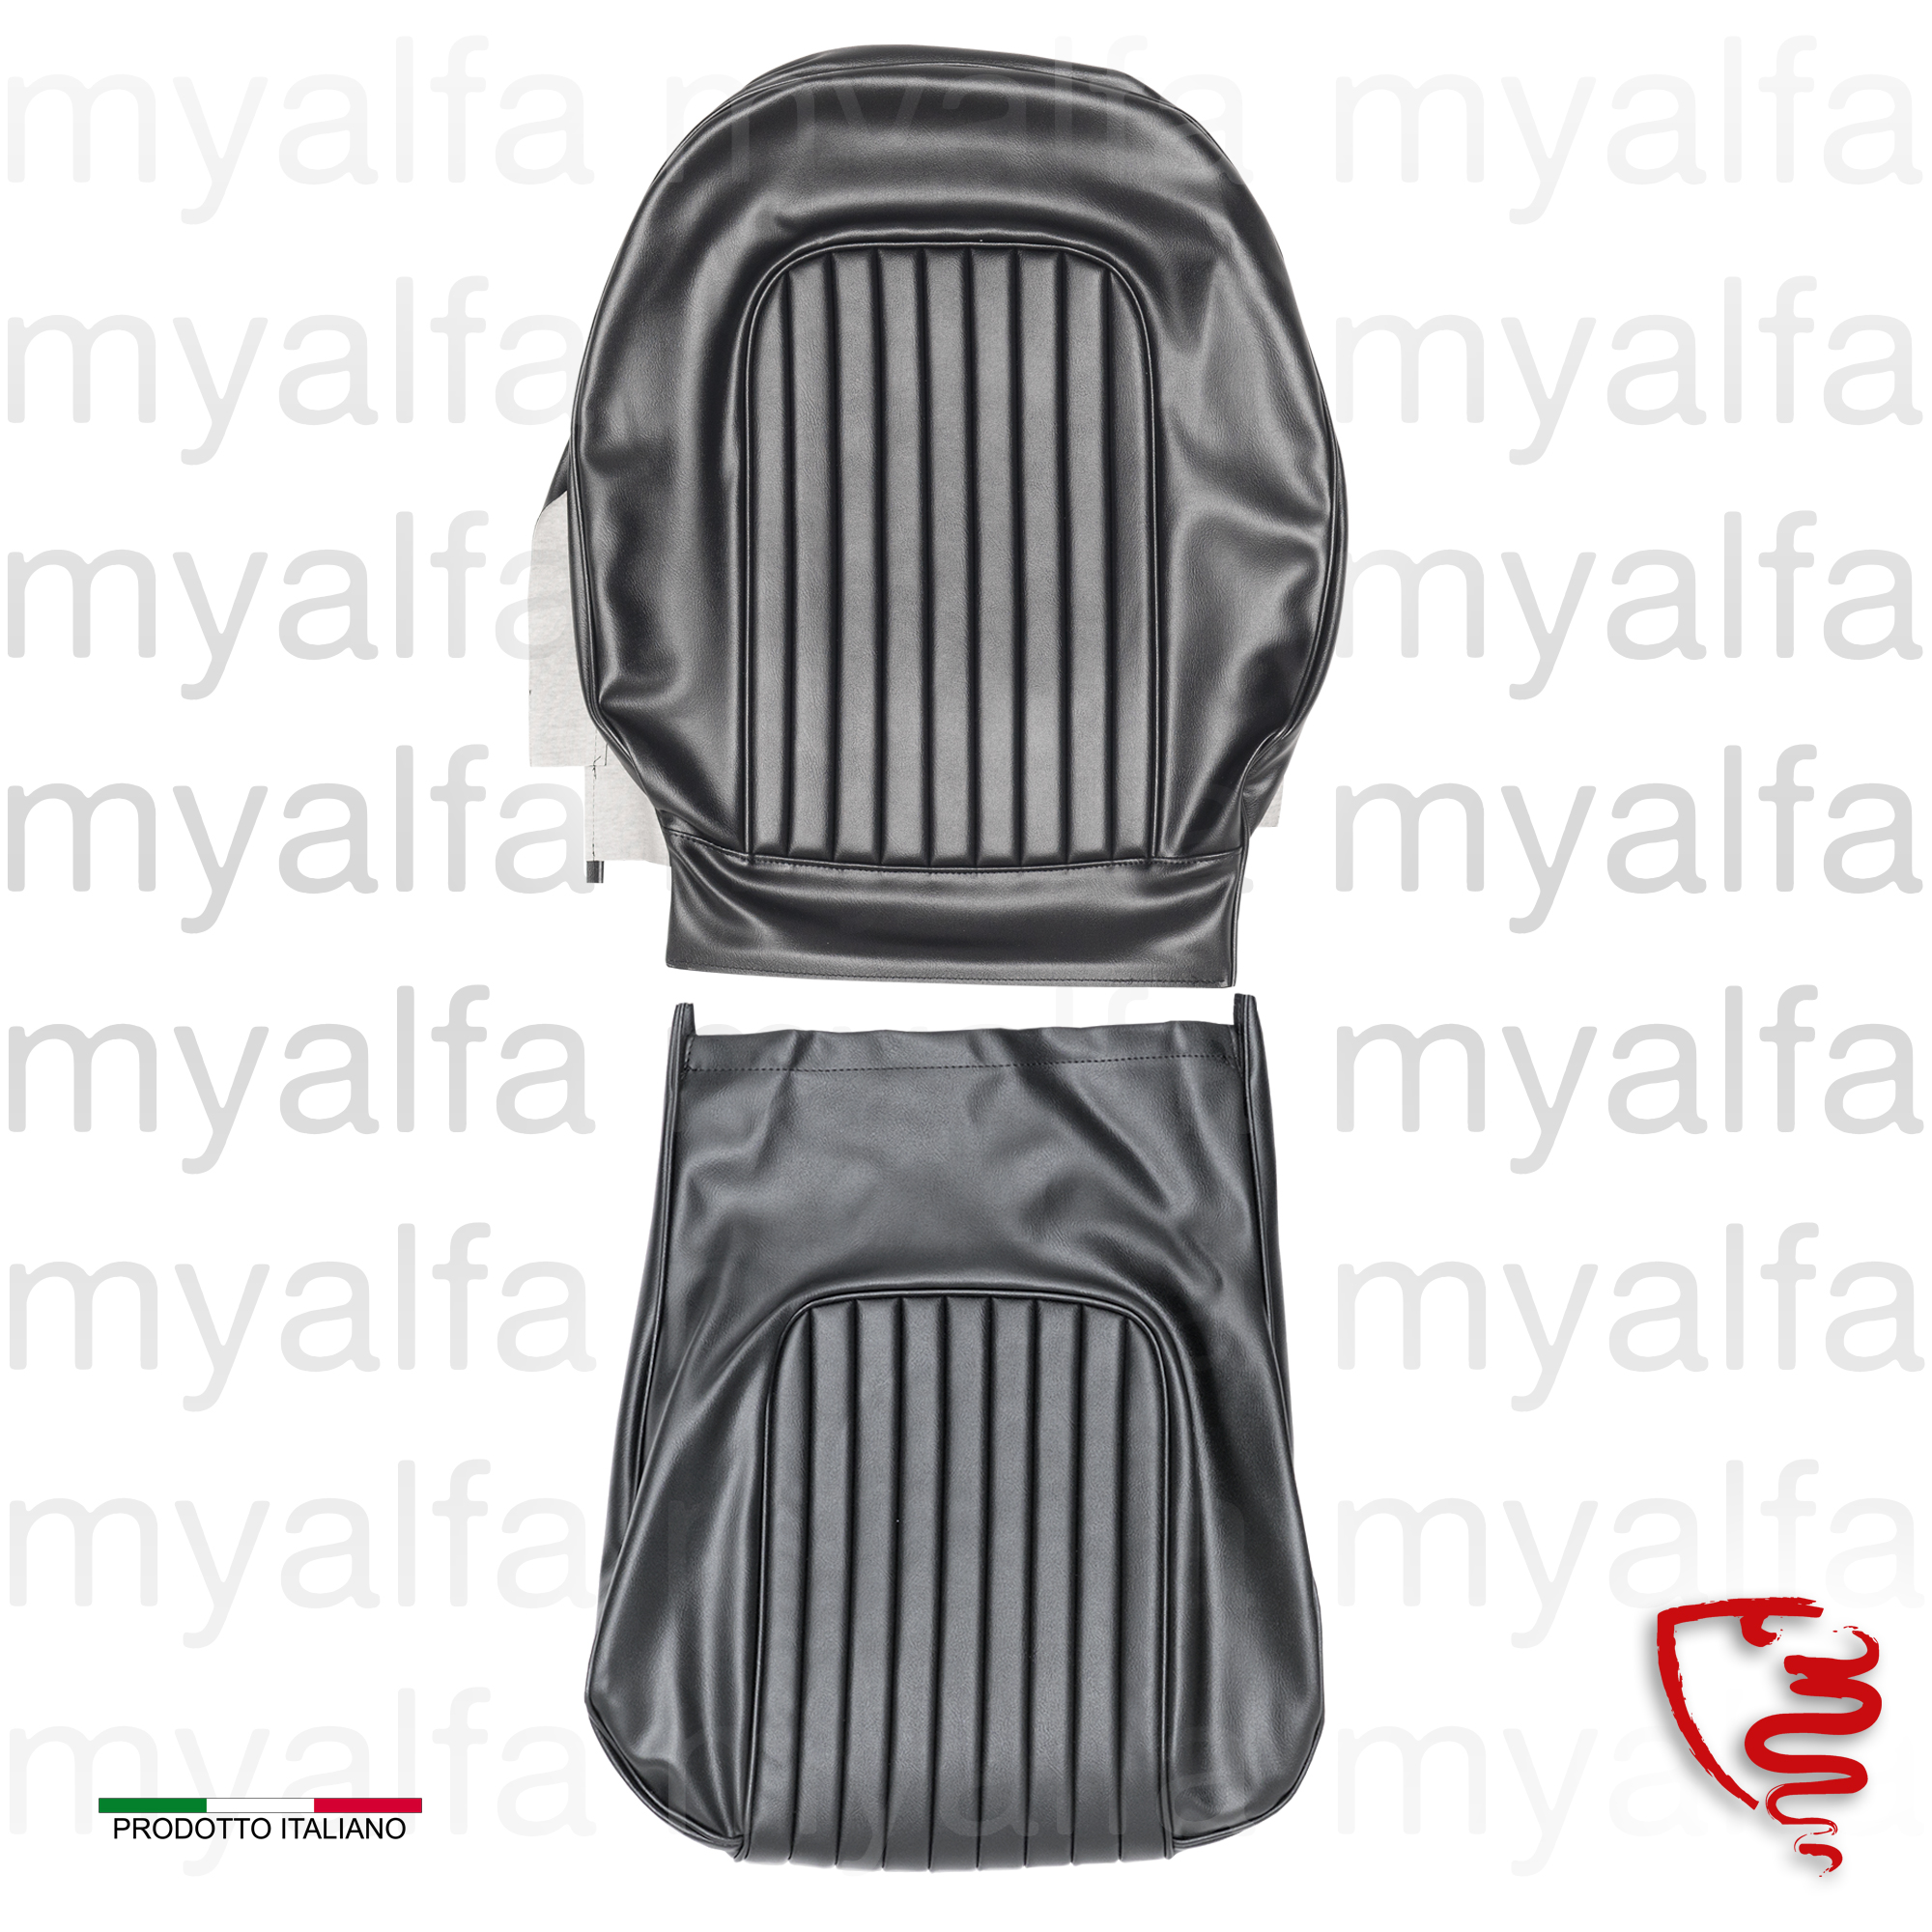 Cover black vinyl seat Spider w / back for 105/115, Spider, Interior, Seats, Seat covers